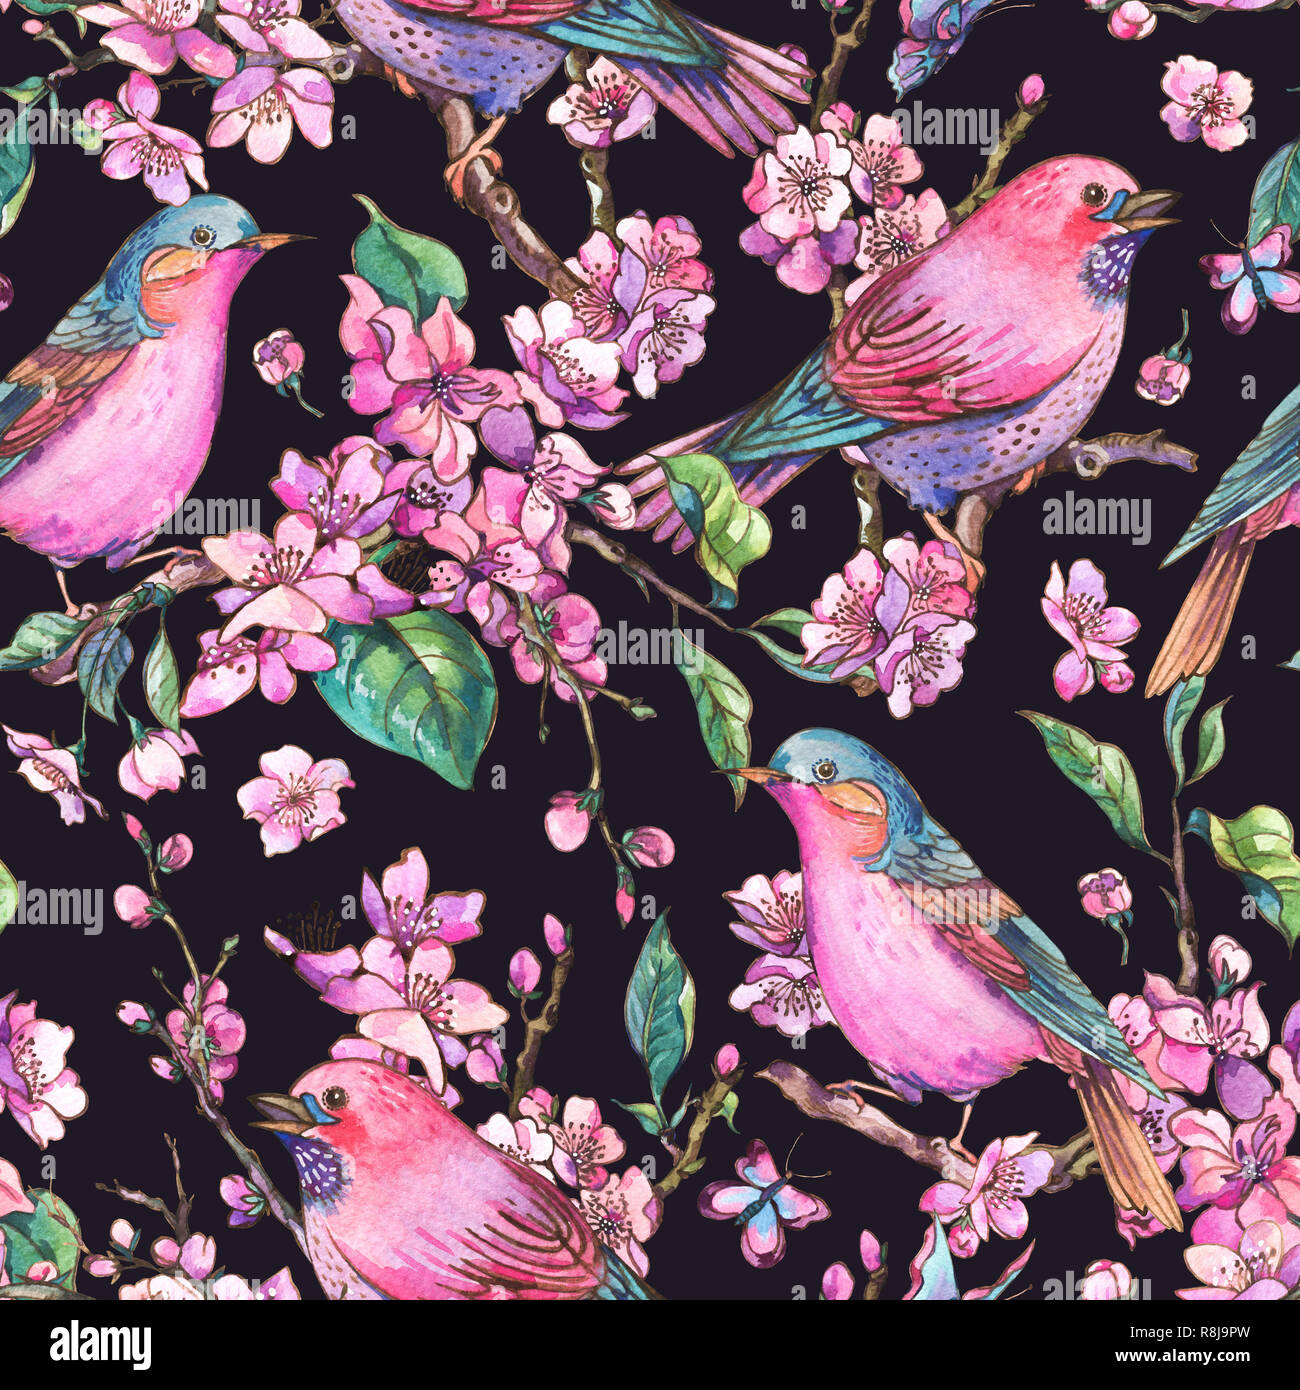 Watercolor floral spring seamless pattern pink blooming branches of cherry peach pear sakura apple trees and butterflies beautiful birds in love